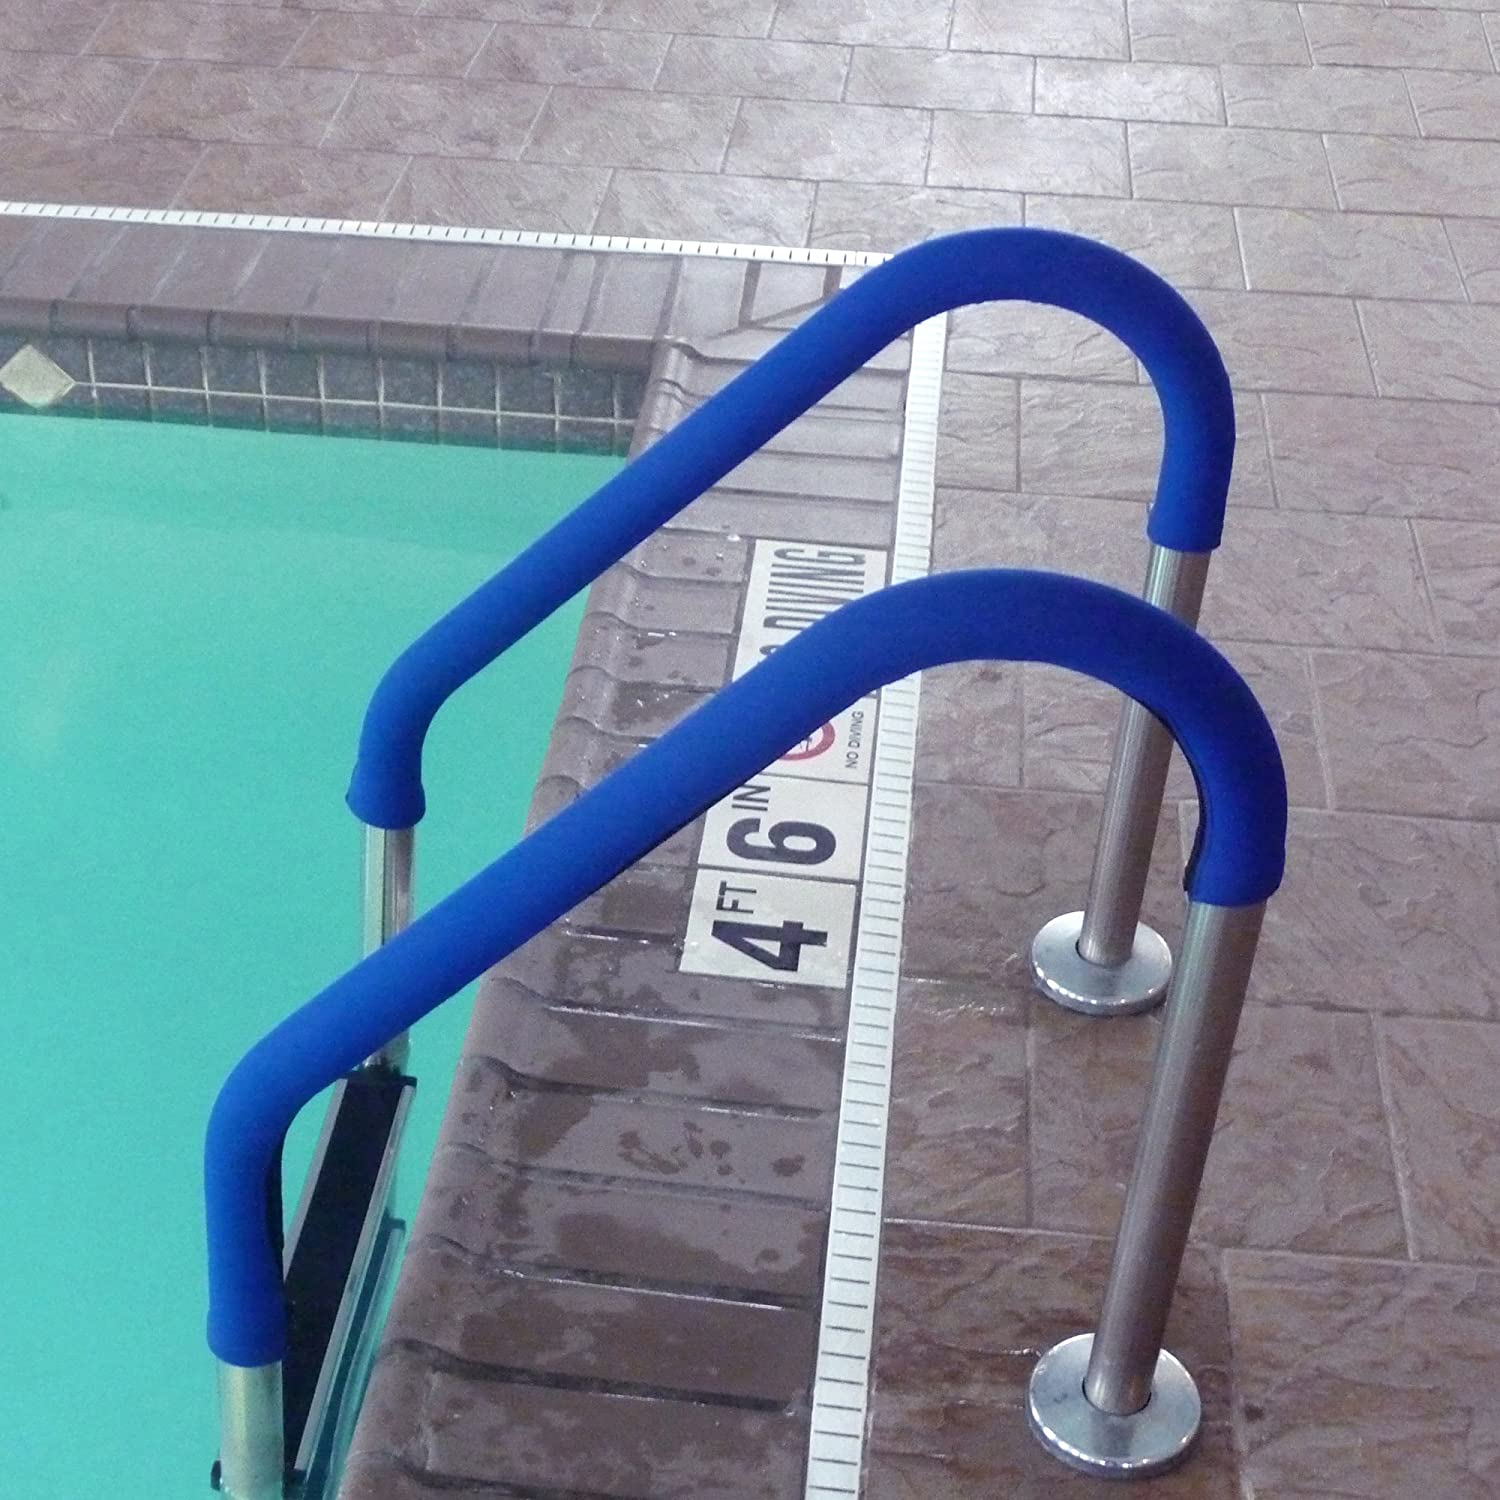 Blue Wave handrail for the swimming pool (Best for summers)